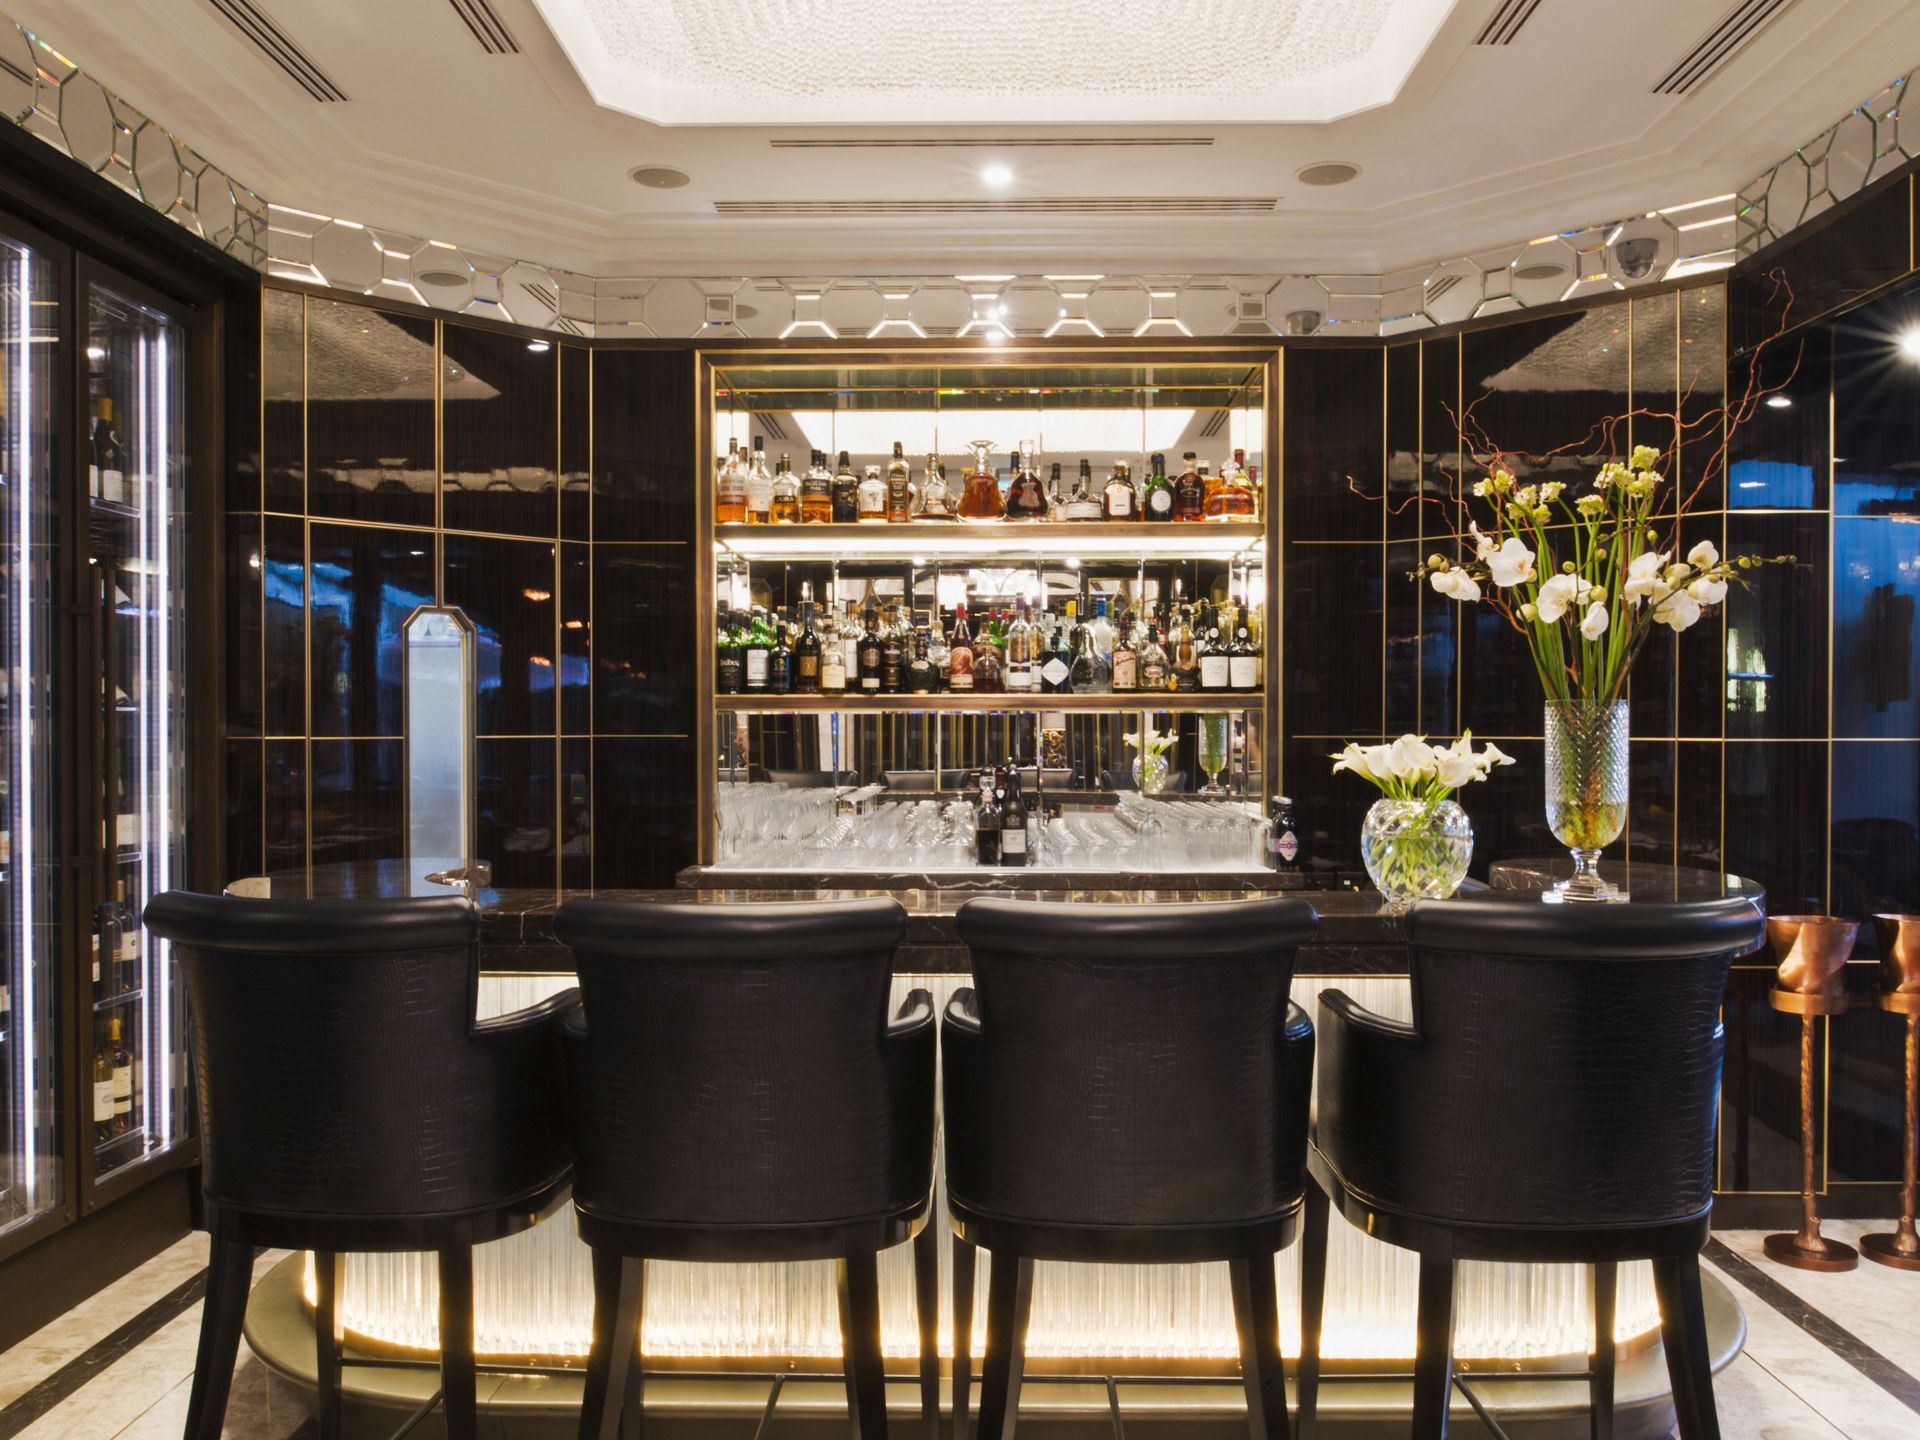 Crsytal bar at the wellesley hotel in london theatre design